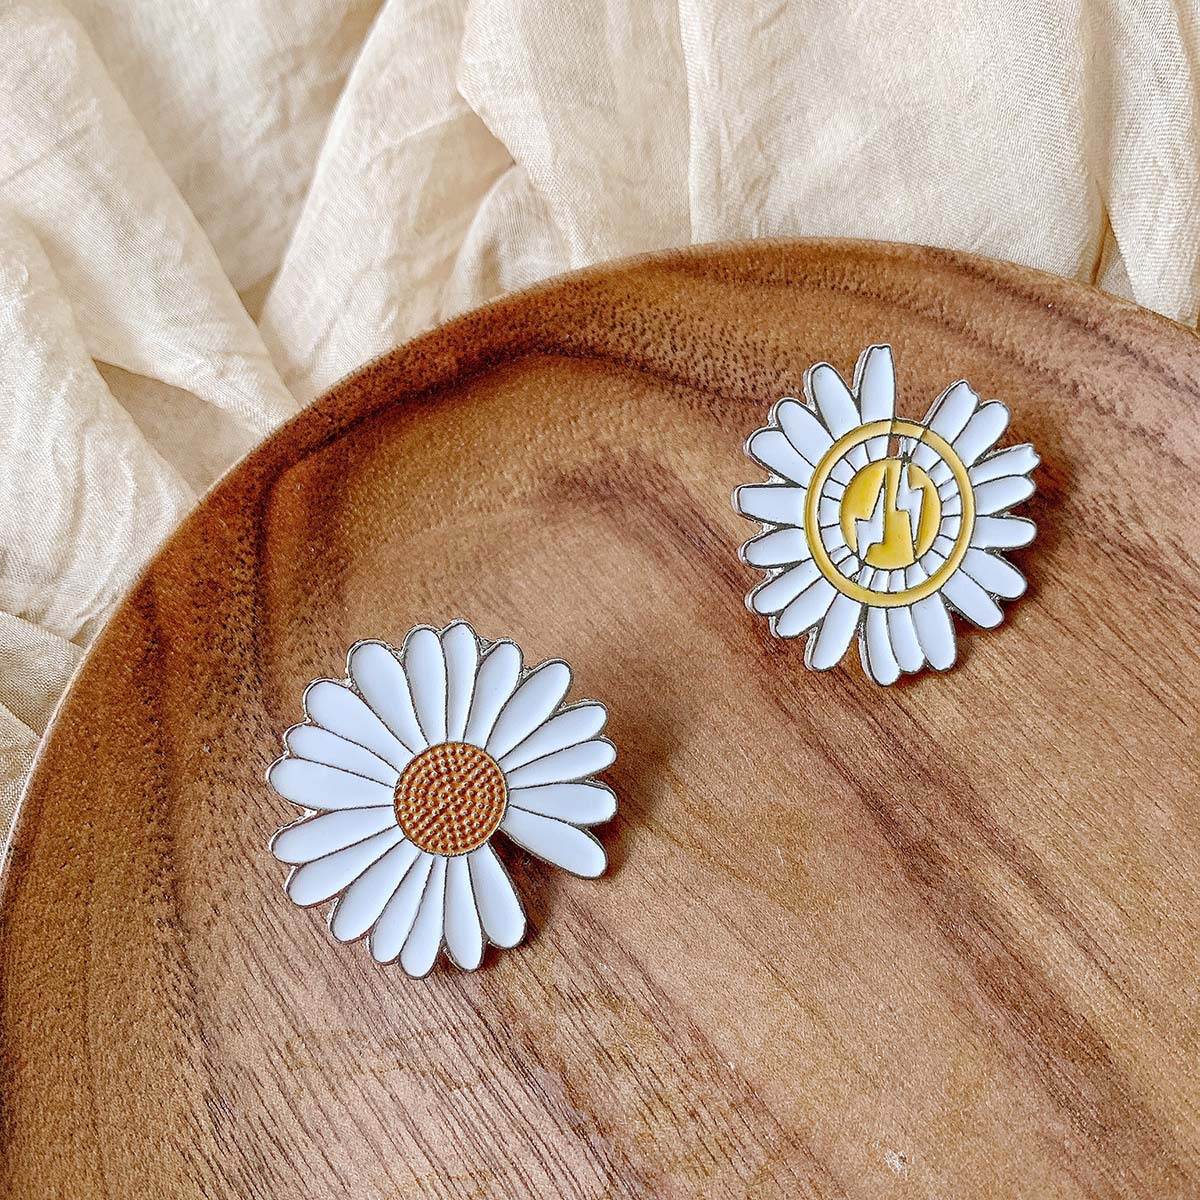 Daisy brooch accessories pin jewelry cartoon chrysanthemum clothes accessories wholesale nihaojewelry NHSD229225